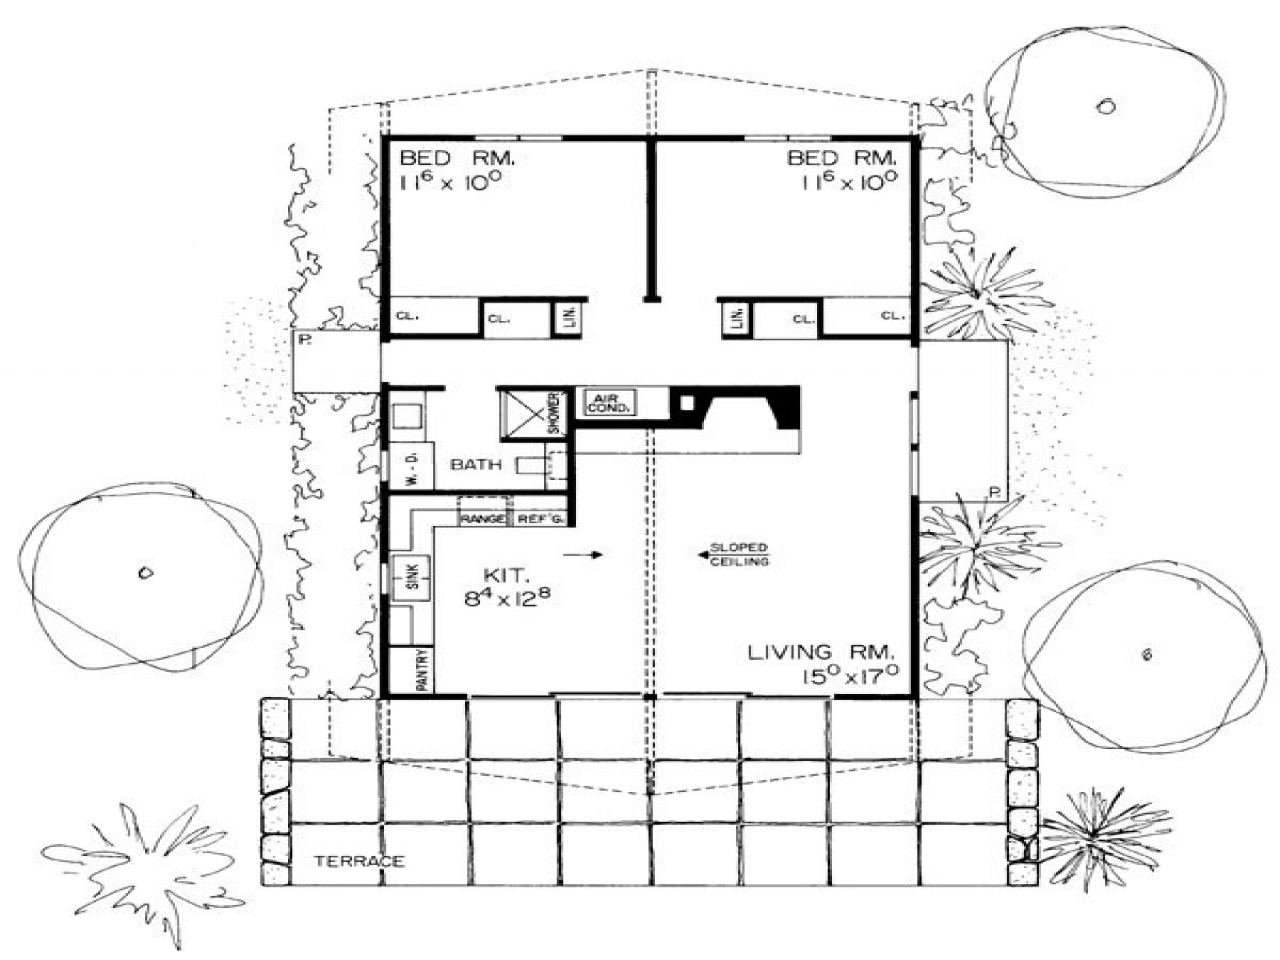 Contemporary house plans retro contemporary house plan for Retro modern house plans